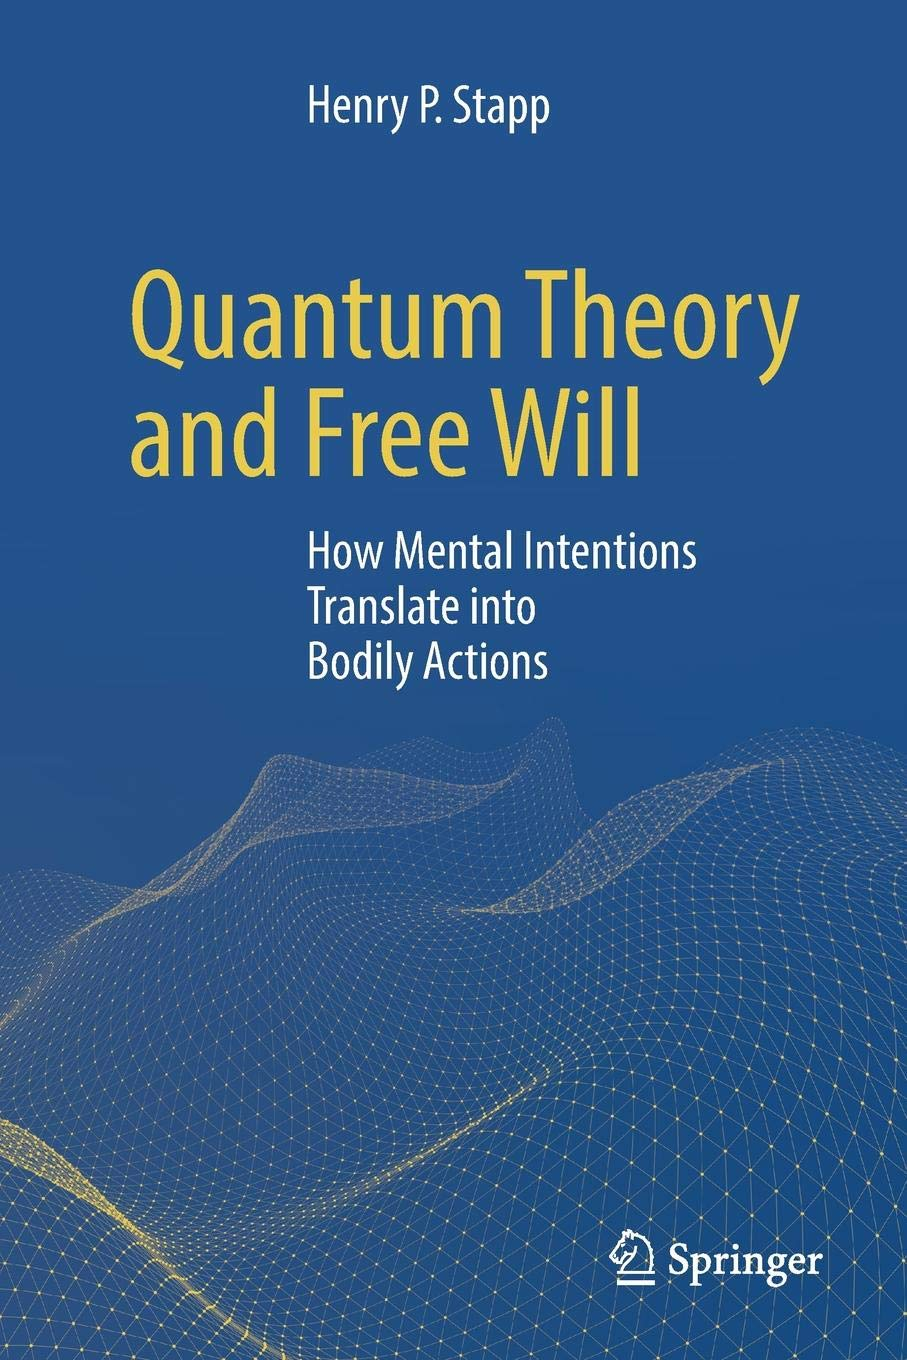 Quantum Theory and Free Will: How Mental Intentions Translate into Bodily  Actions: Henry P. Stapp: 9783319863702: Amazon.com: Books